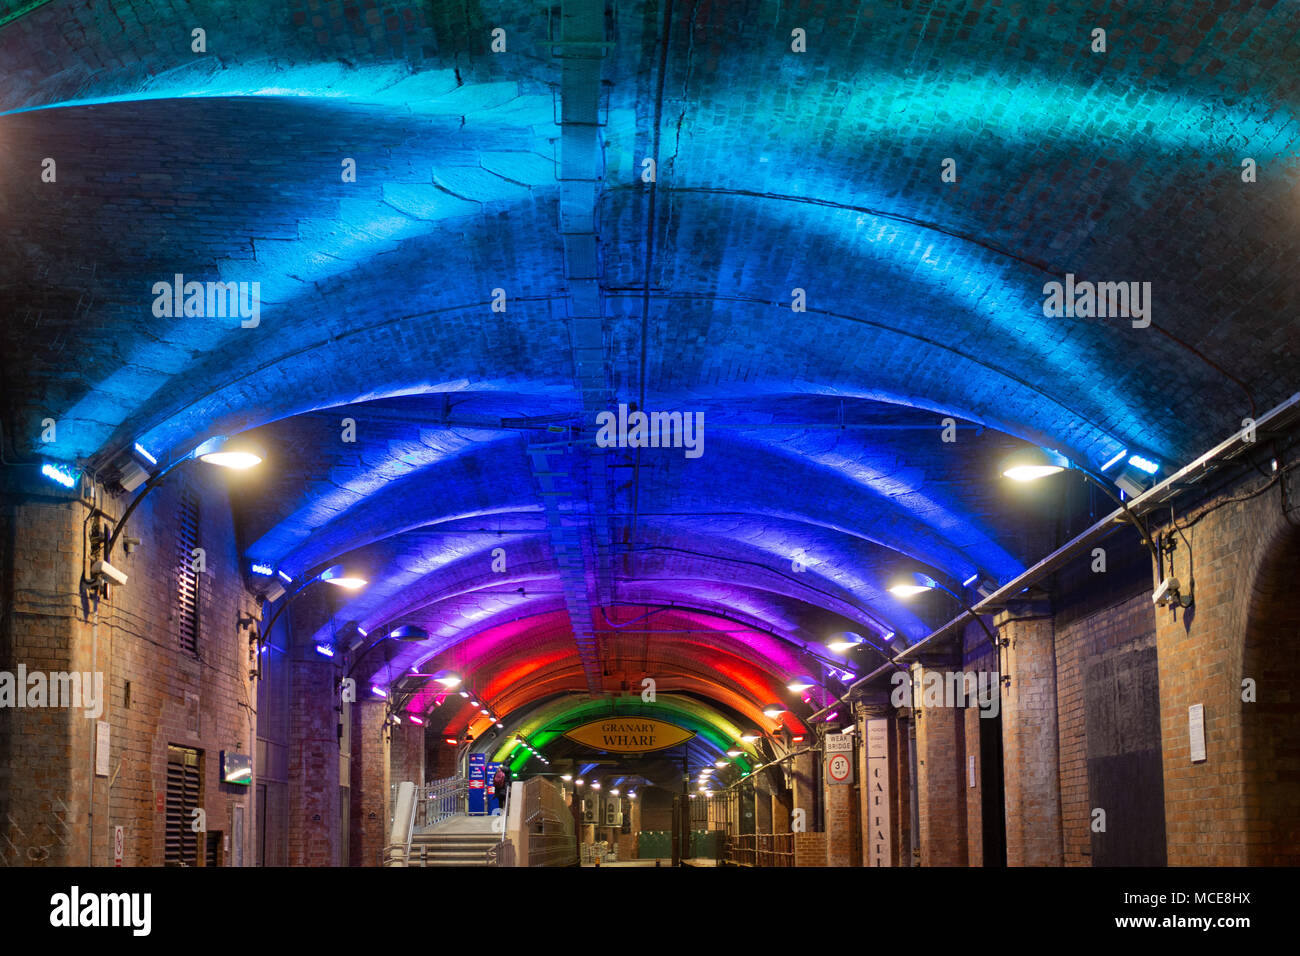 The tunnels under Leeds railway station that are now part of Granary Wharf a new entertainment complex in the heart of Leeds. - Stock Image